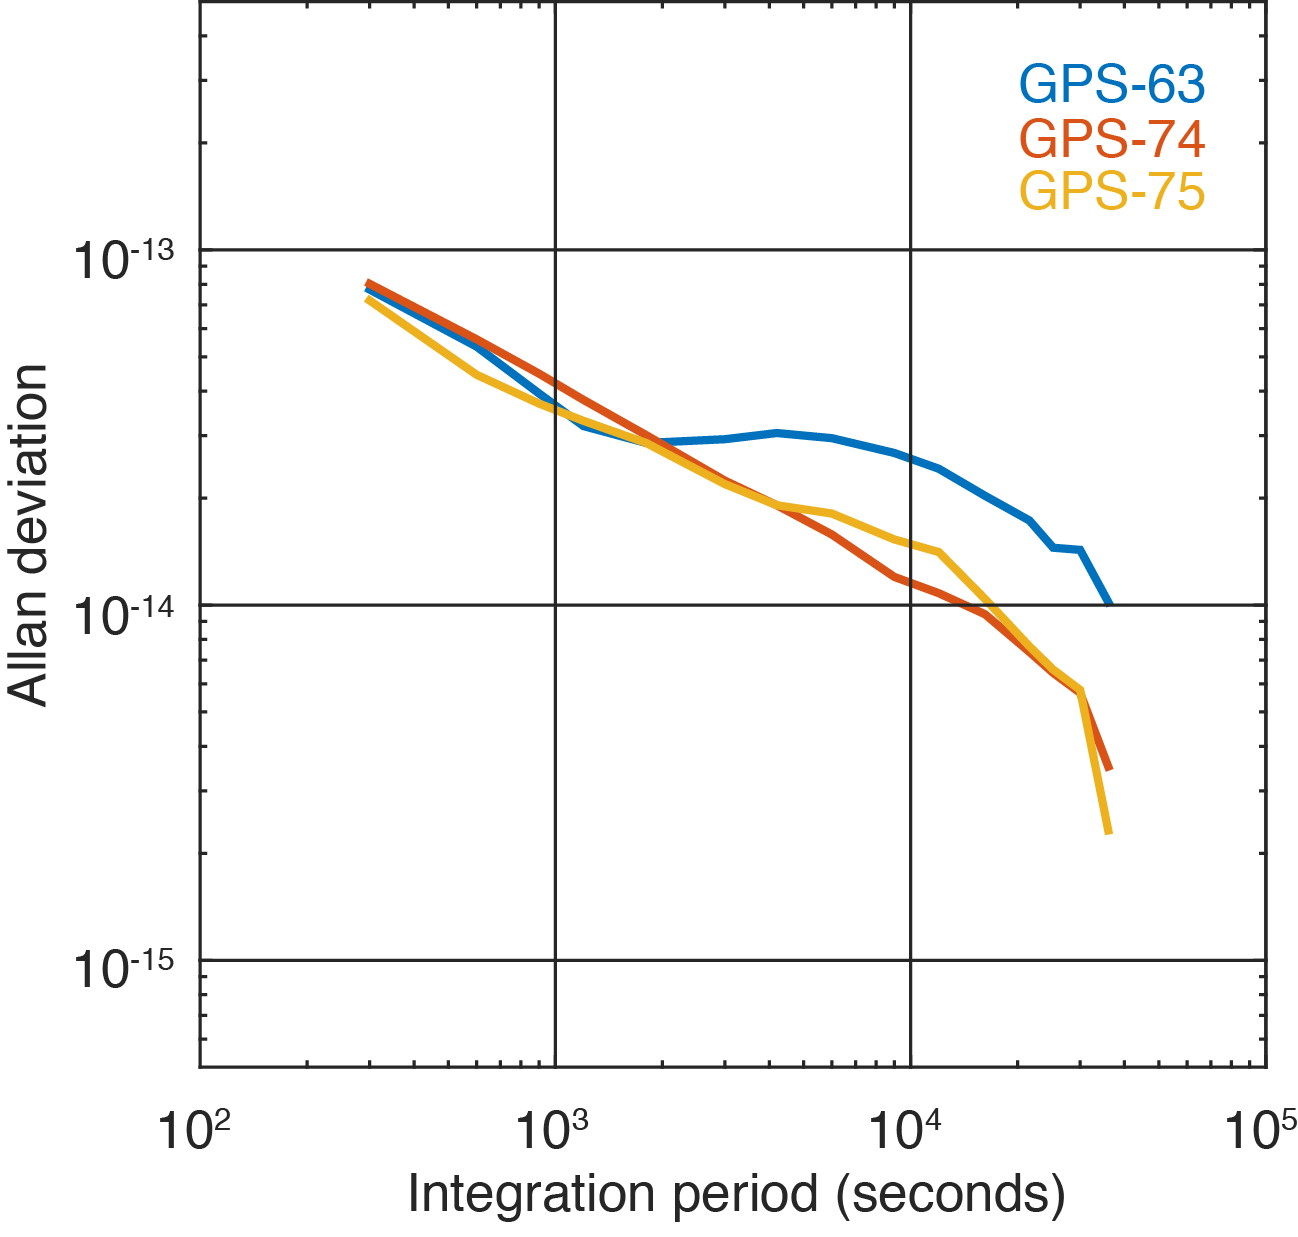 FIGURE 3. Allan deviation of the Block IIF satellite GPS-63 and the GPS III satellites GPS-74 and GPS-75 computed from 5-minute clock solutions produced by DLR. (Figure: Steigenberger, et al)